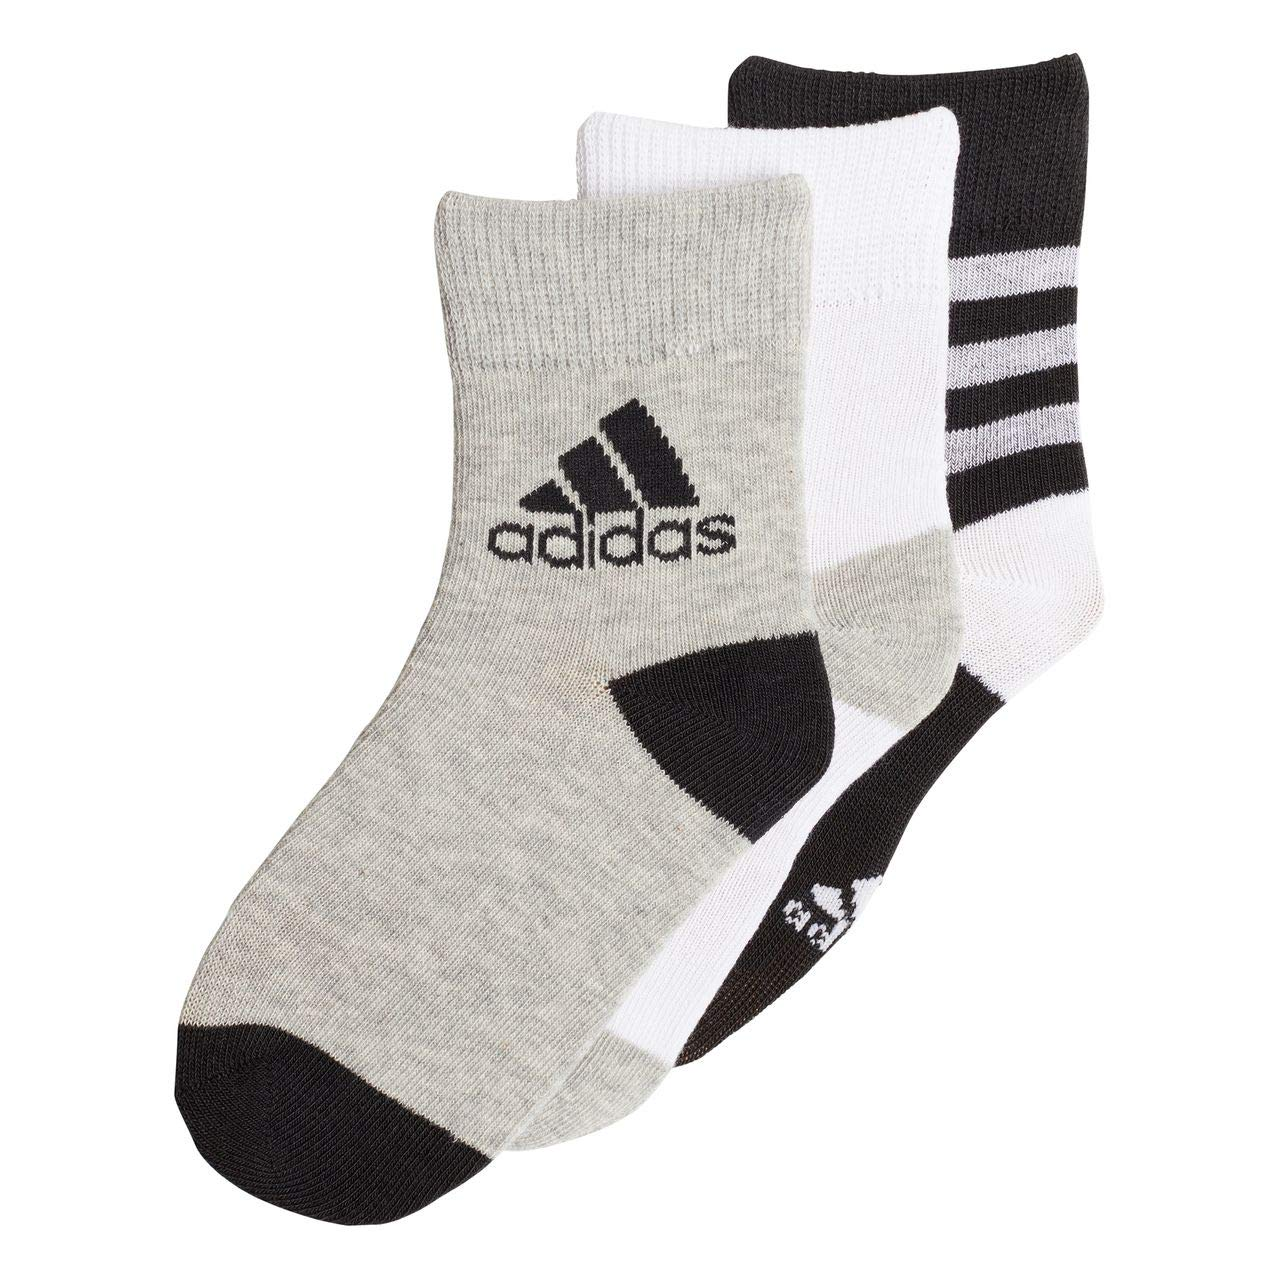 806516c4b4 Adidas Kids Training Ankle Socks 3 Pairs Lifestyle Infant DJ2266 ...